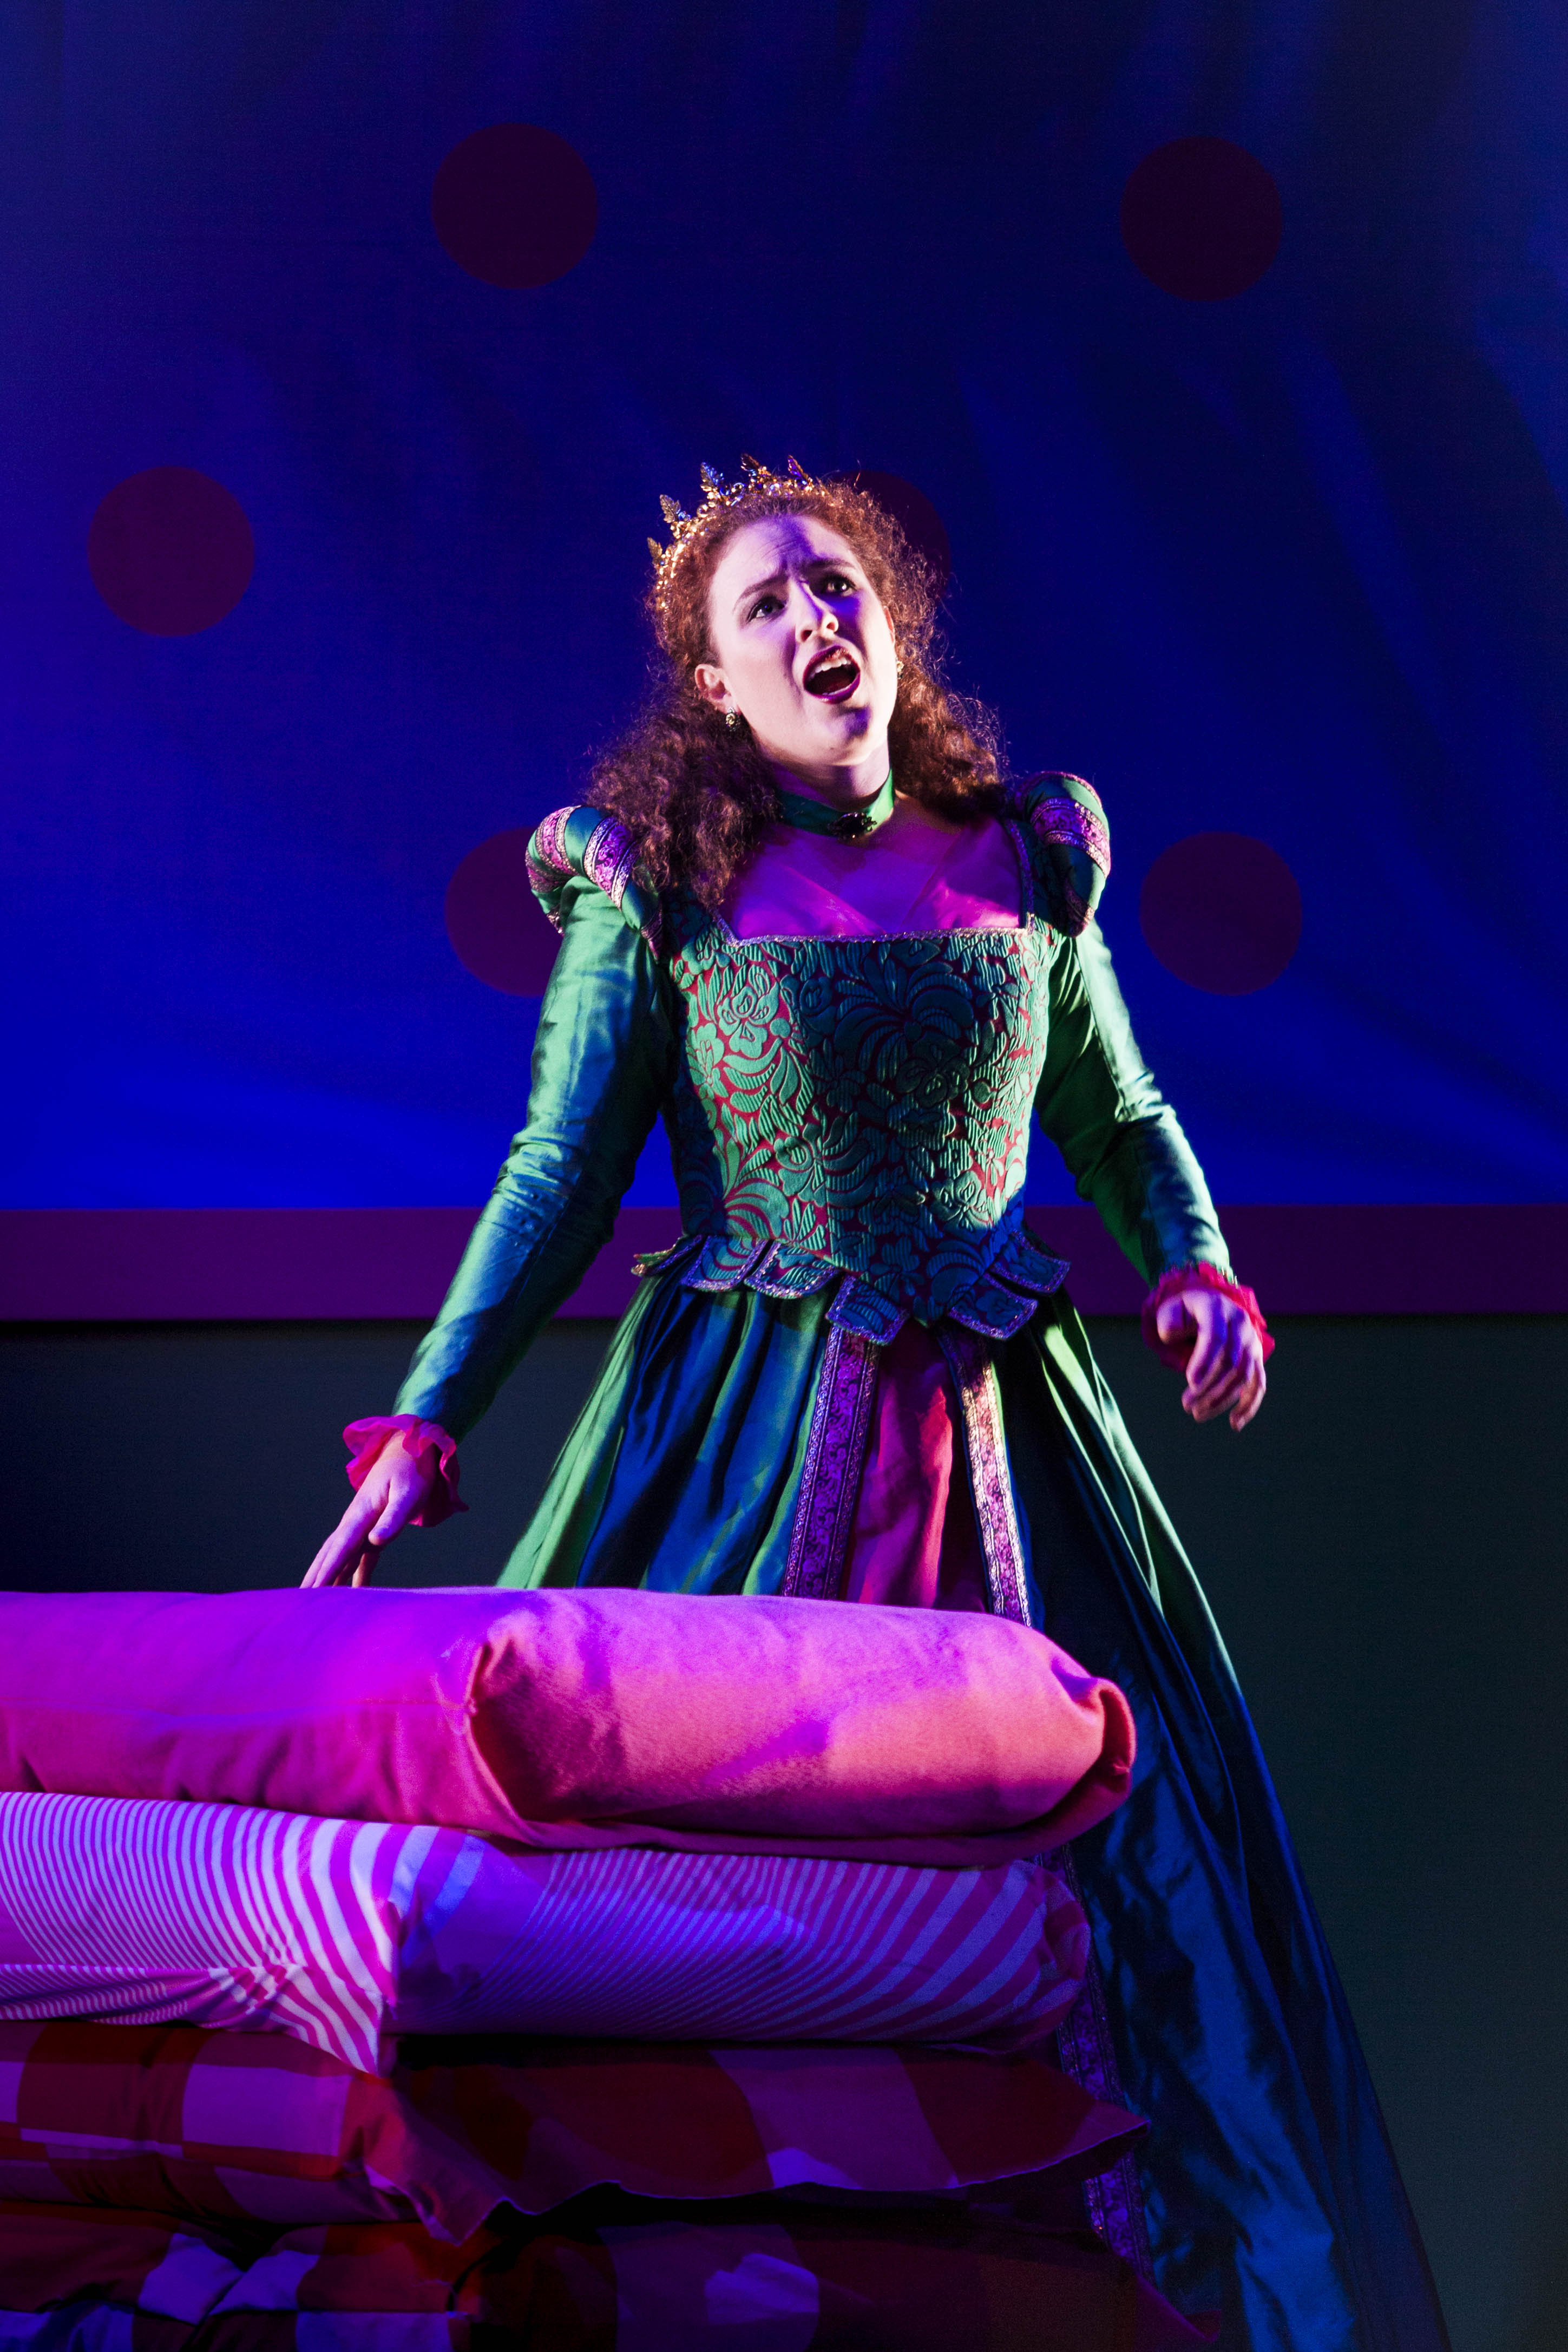 Victorian_Opera_The_Princess_and_the_Pea